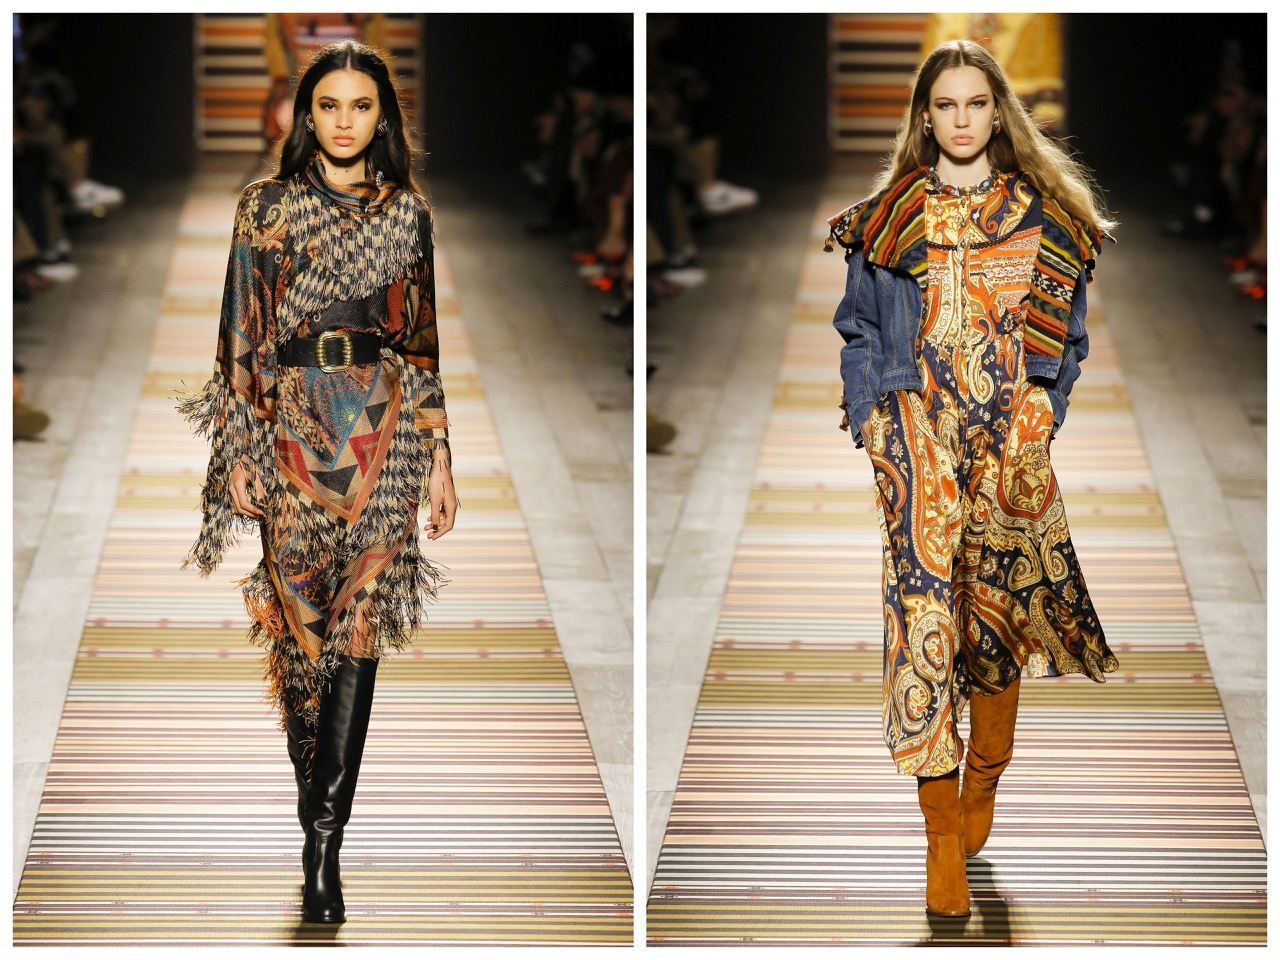 etro,mode,fashion,fashion week,milan,hiver 19,winter 18,bohemian,boho style